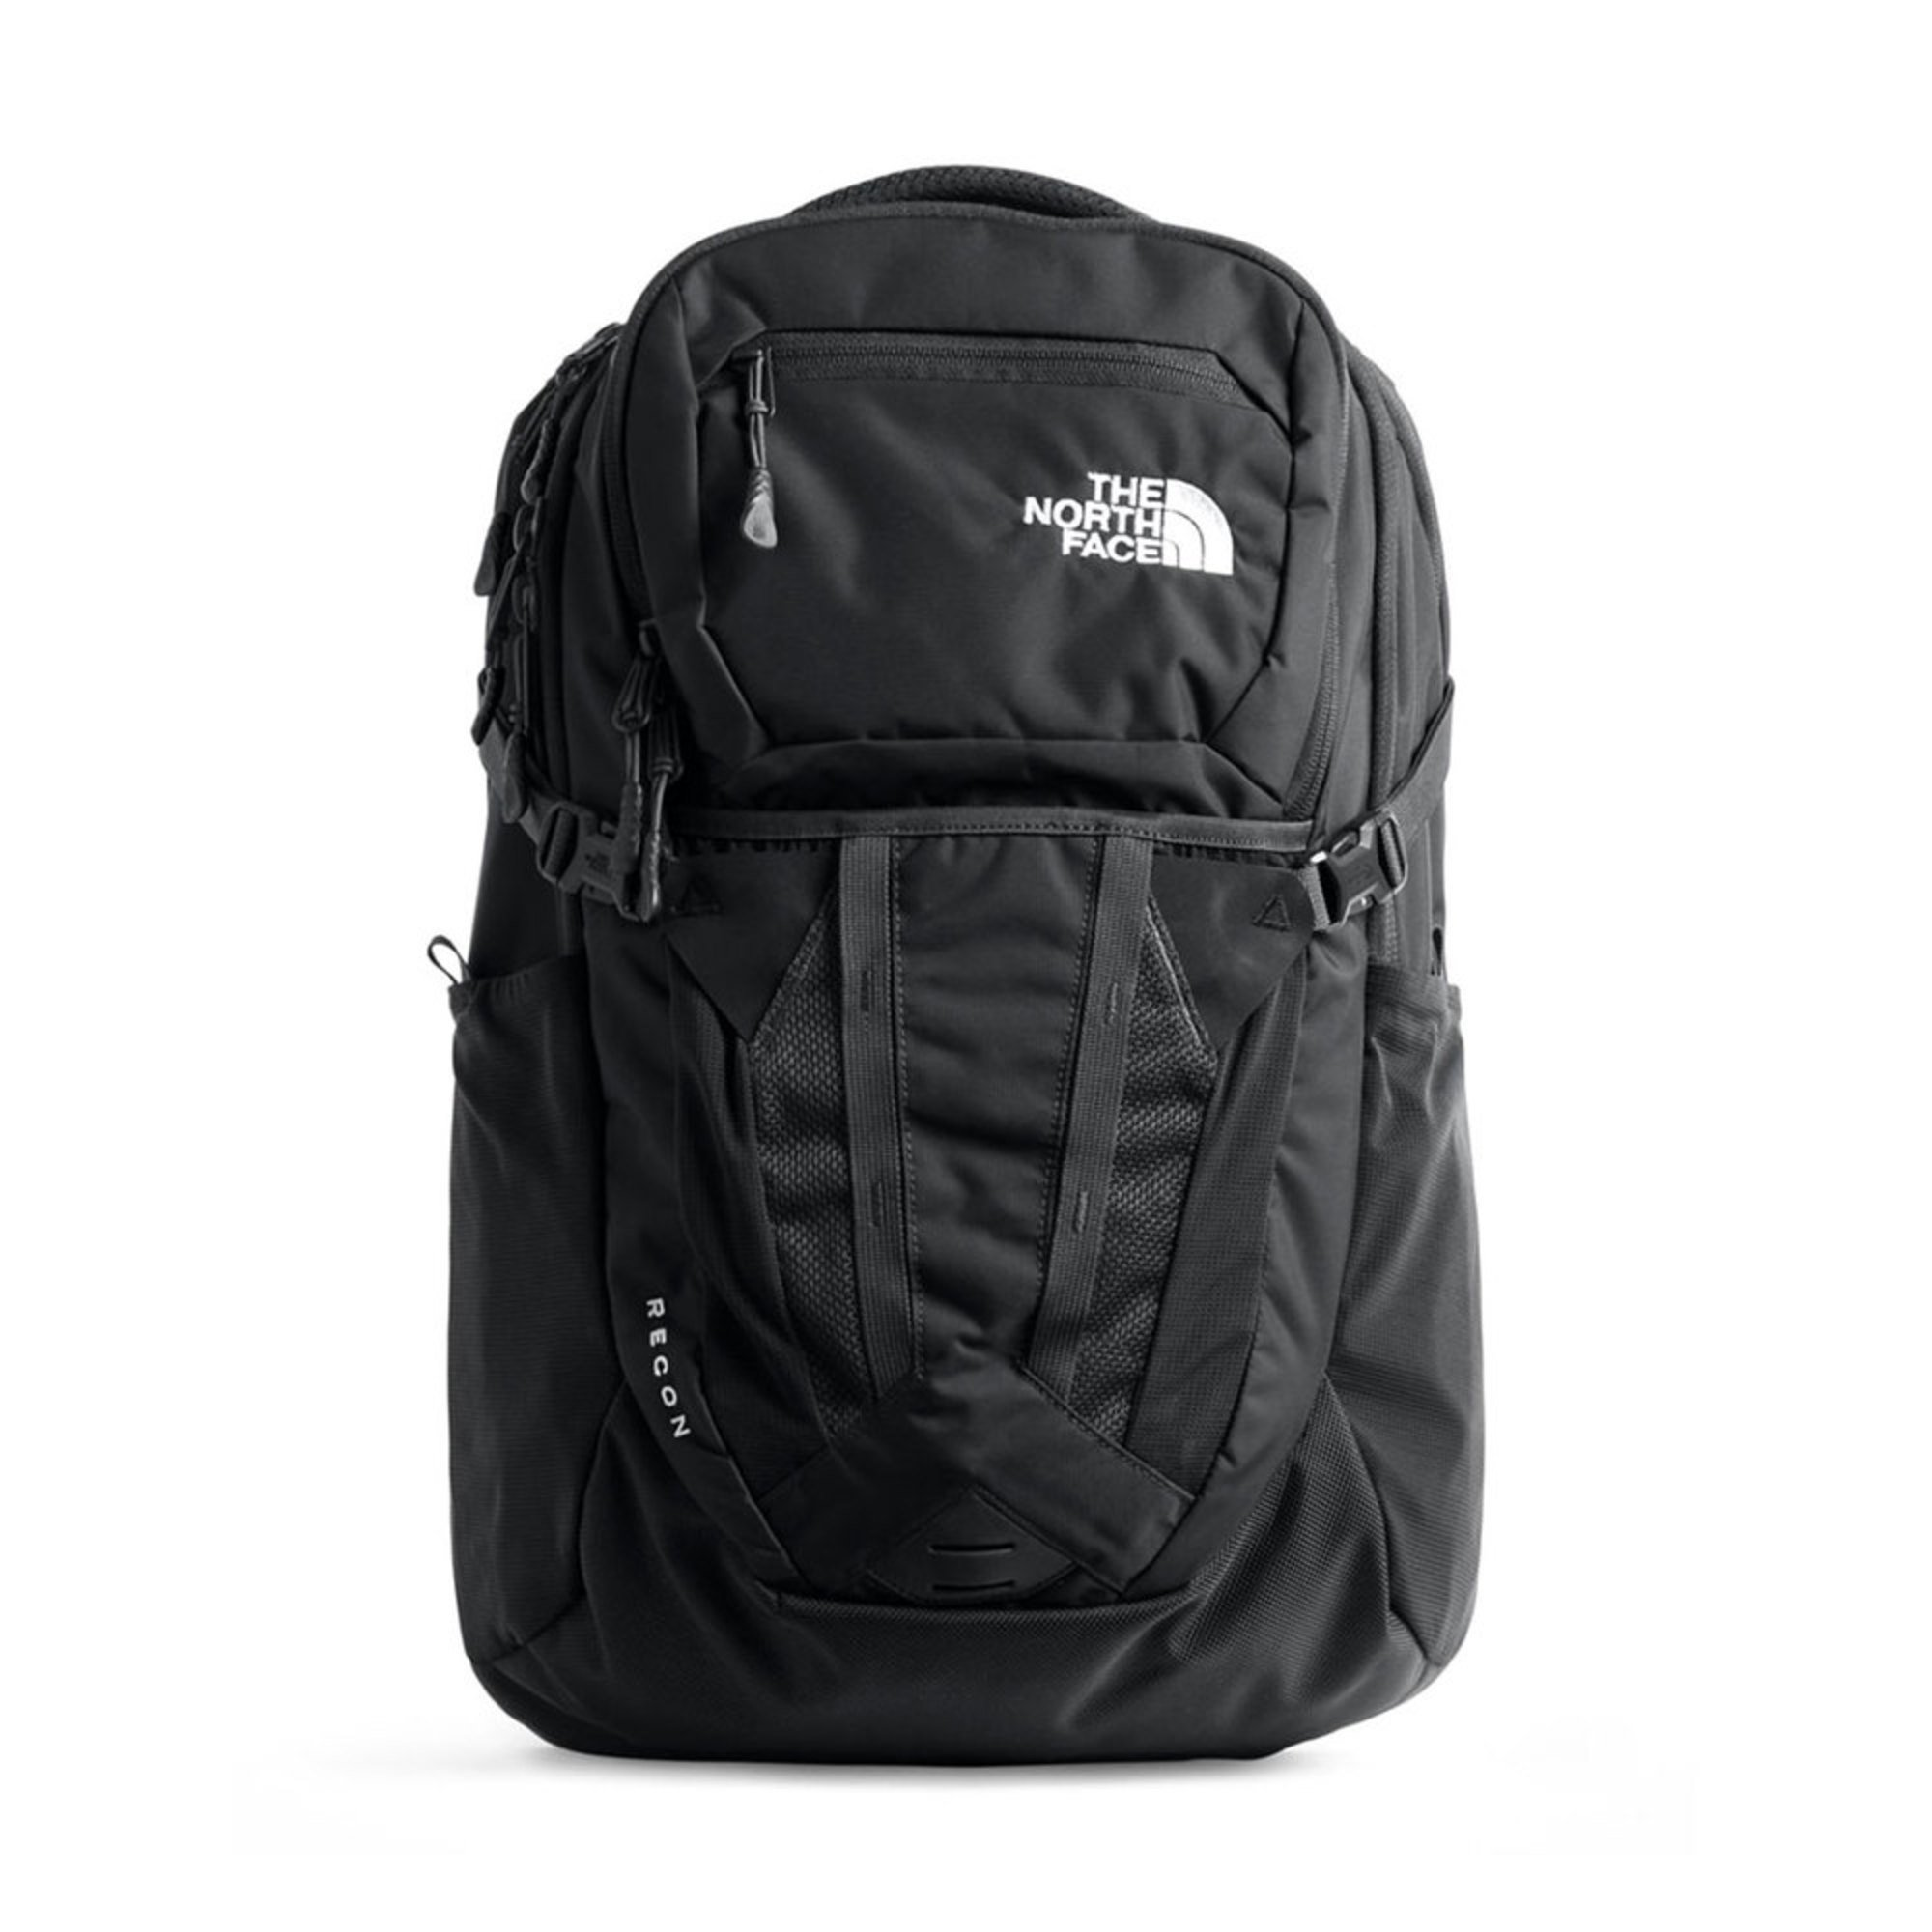 e14de9c471 The North Face Recon Backpack - Black | Backpacks | Luggage & Backpacks -  Shop Your Navy Exchange - Official Site